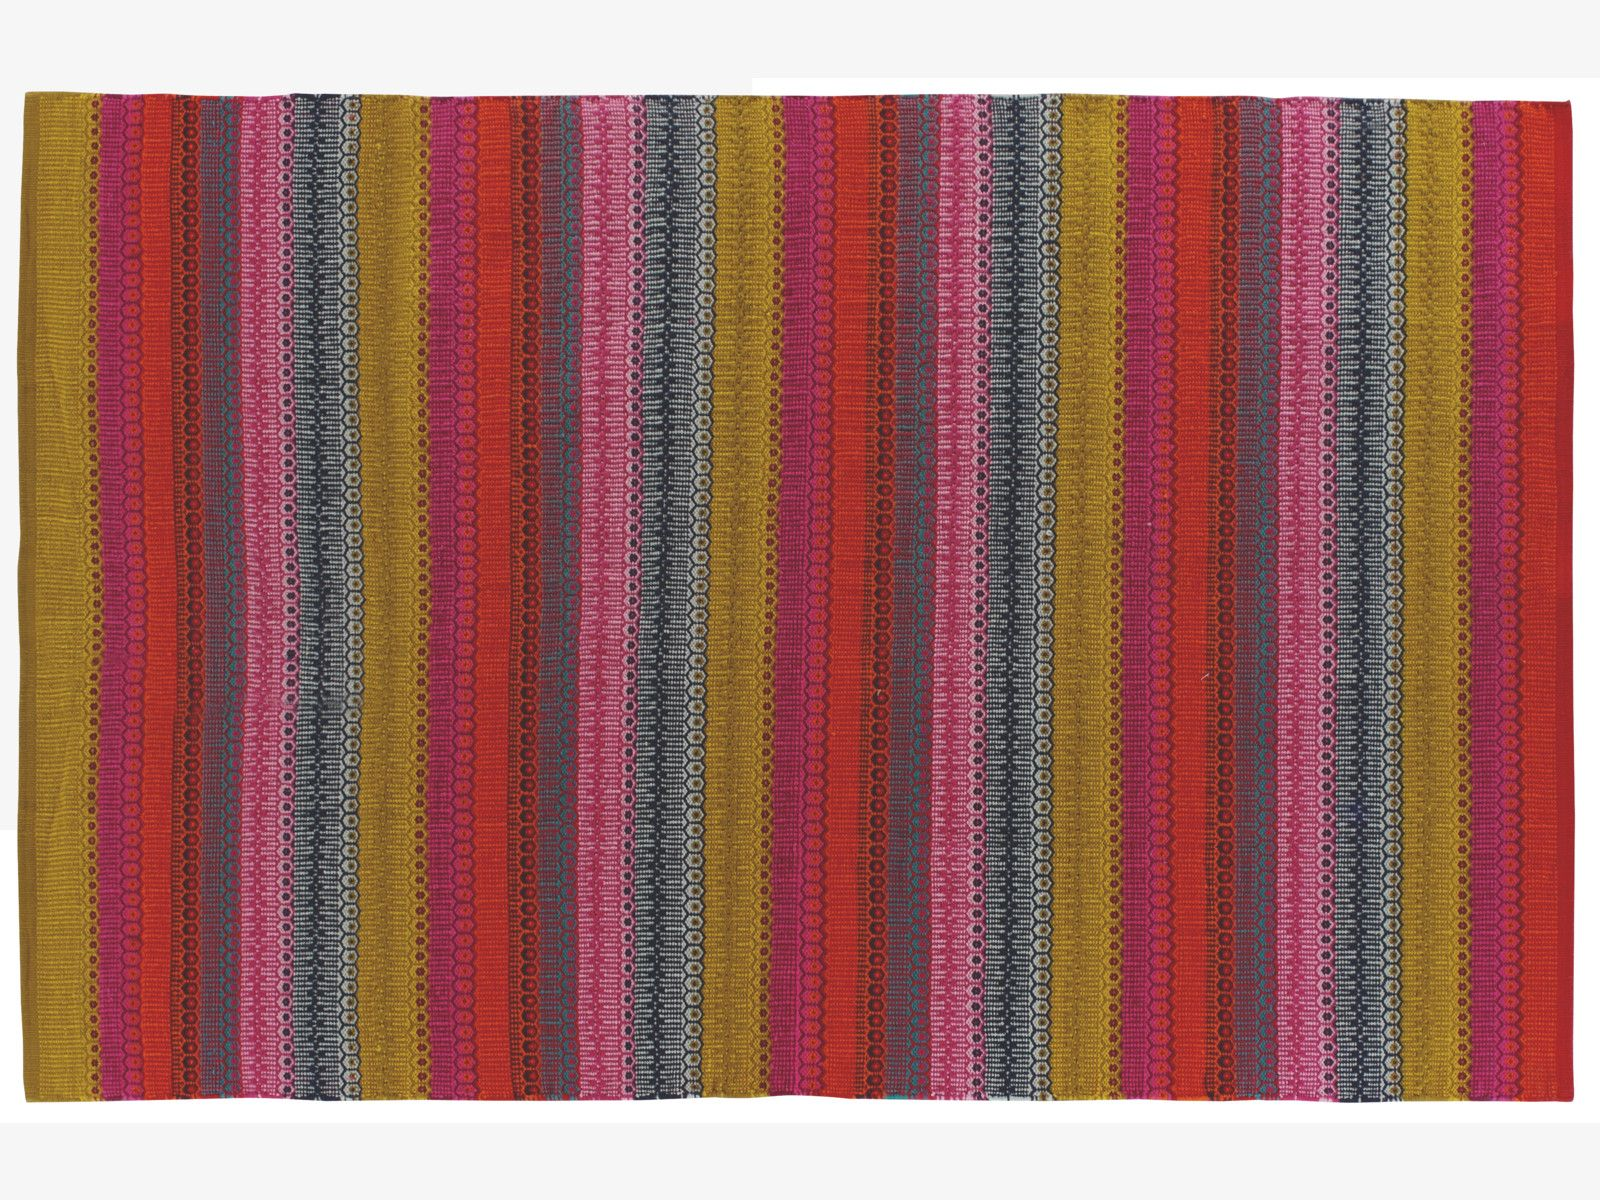 Intricately Hand Woven With Stripes And Patterns The Agnes Small Multi Coloured Flat Weave Cotton Rug Is Hard Wearing Ideal For Brighterning Up Any